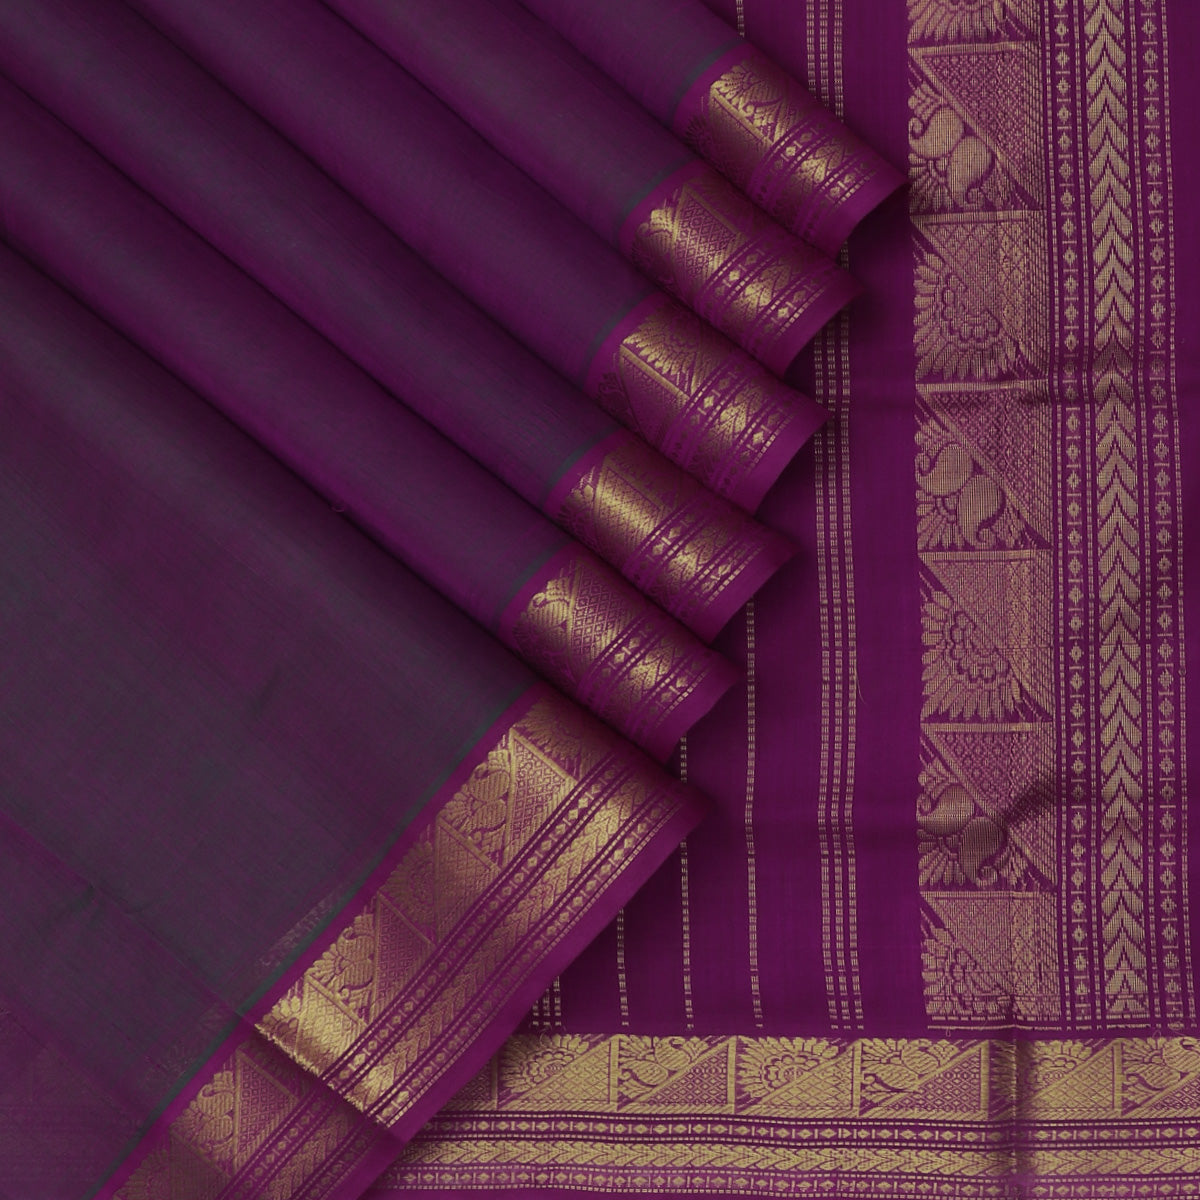 Silk Cotton Seree Dual shade of Violet with Temple Zari border